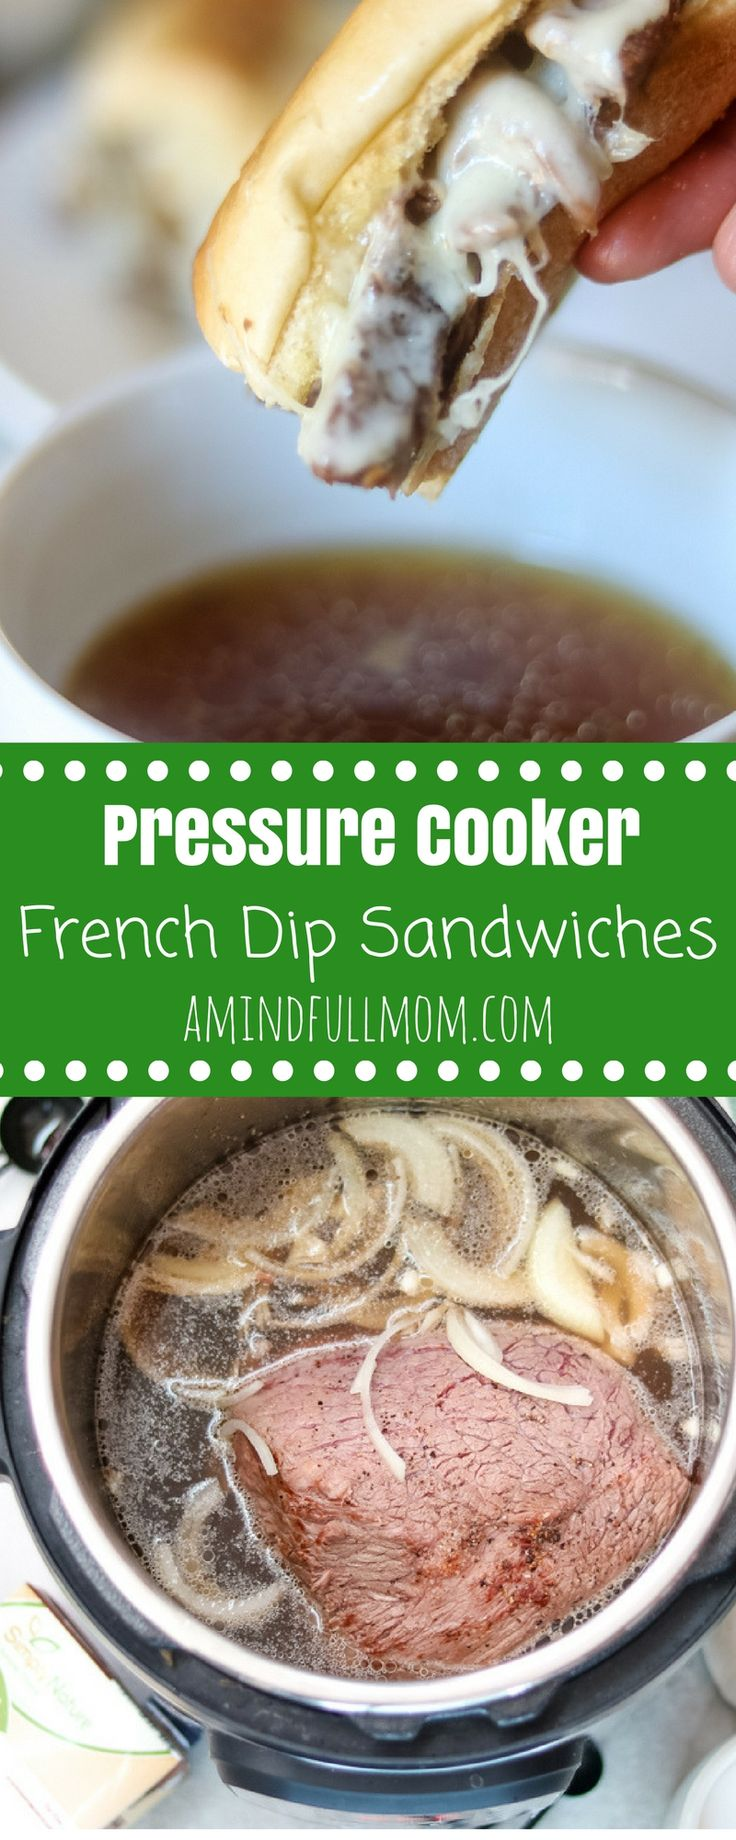 Pressure Cooker French Dip Sandwiches: Easy French Dip Sandwiches are sure to become a new family favorite dinner. Tender chuck roast is piled on a toasted garlic bun and smoothered with provolone cheese. Served up with rich broth on the side for dipping. These delicious sandwiches are made with almost no effort in the Instant Pot or Slow Cooker.